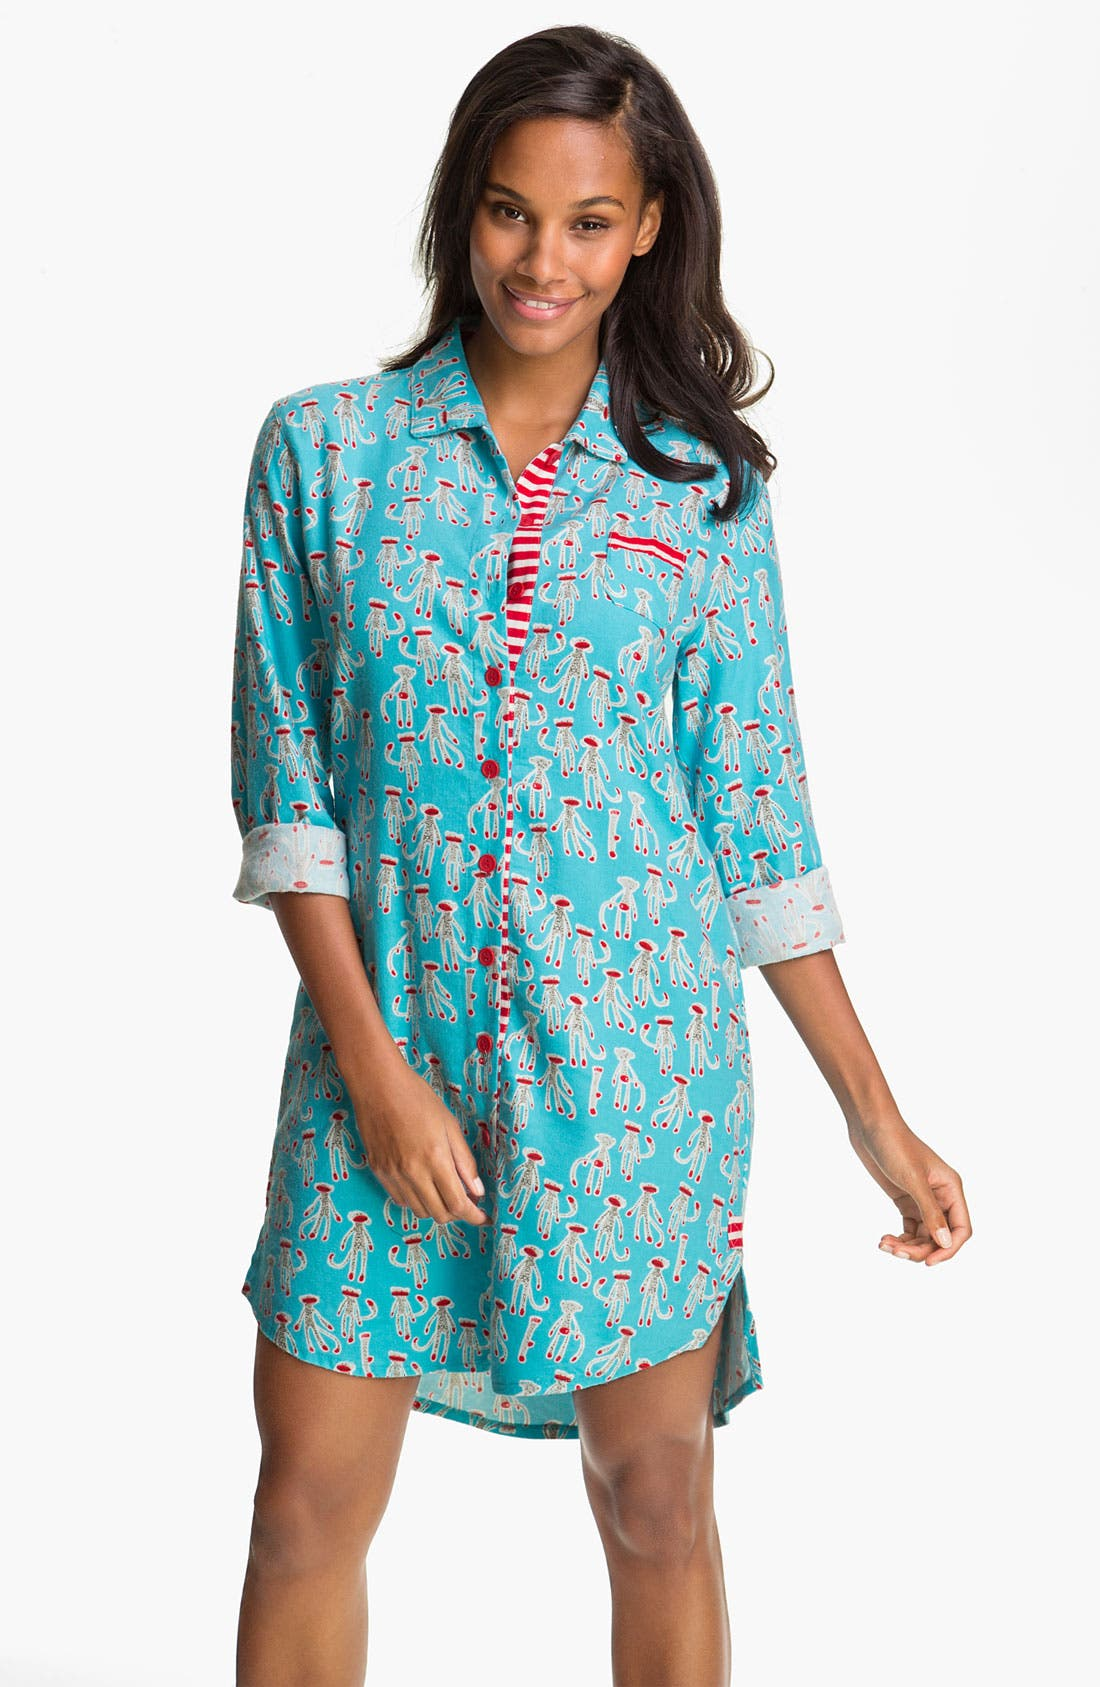 Alternate Image 1 Selected - Munki Munki Flannel Nightshirt